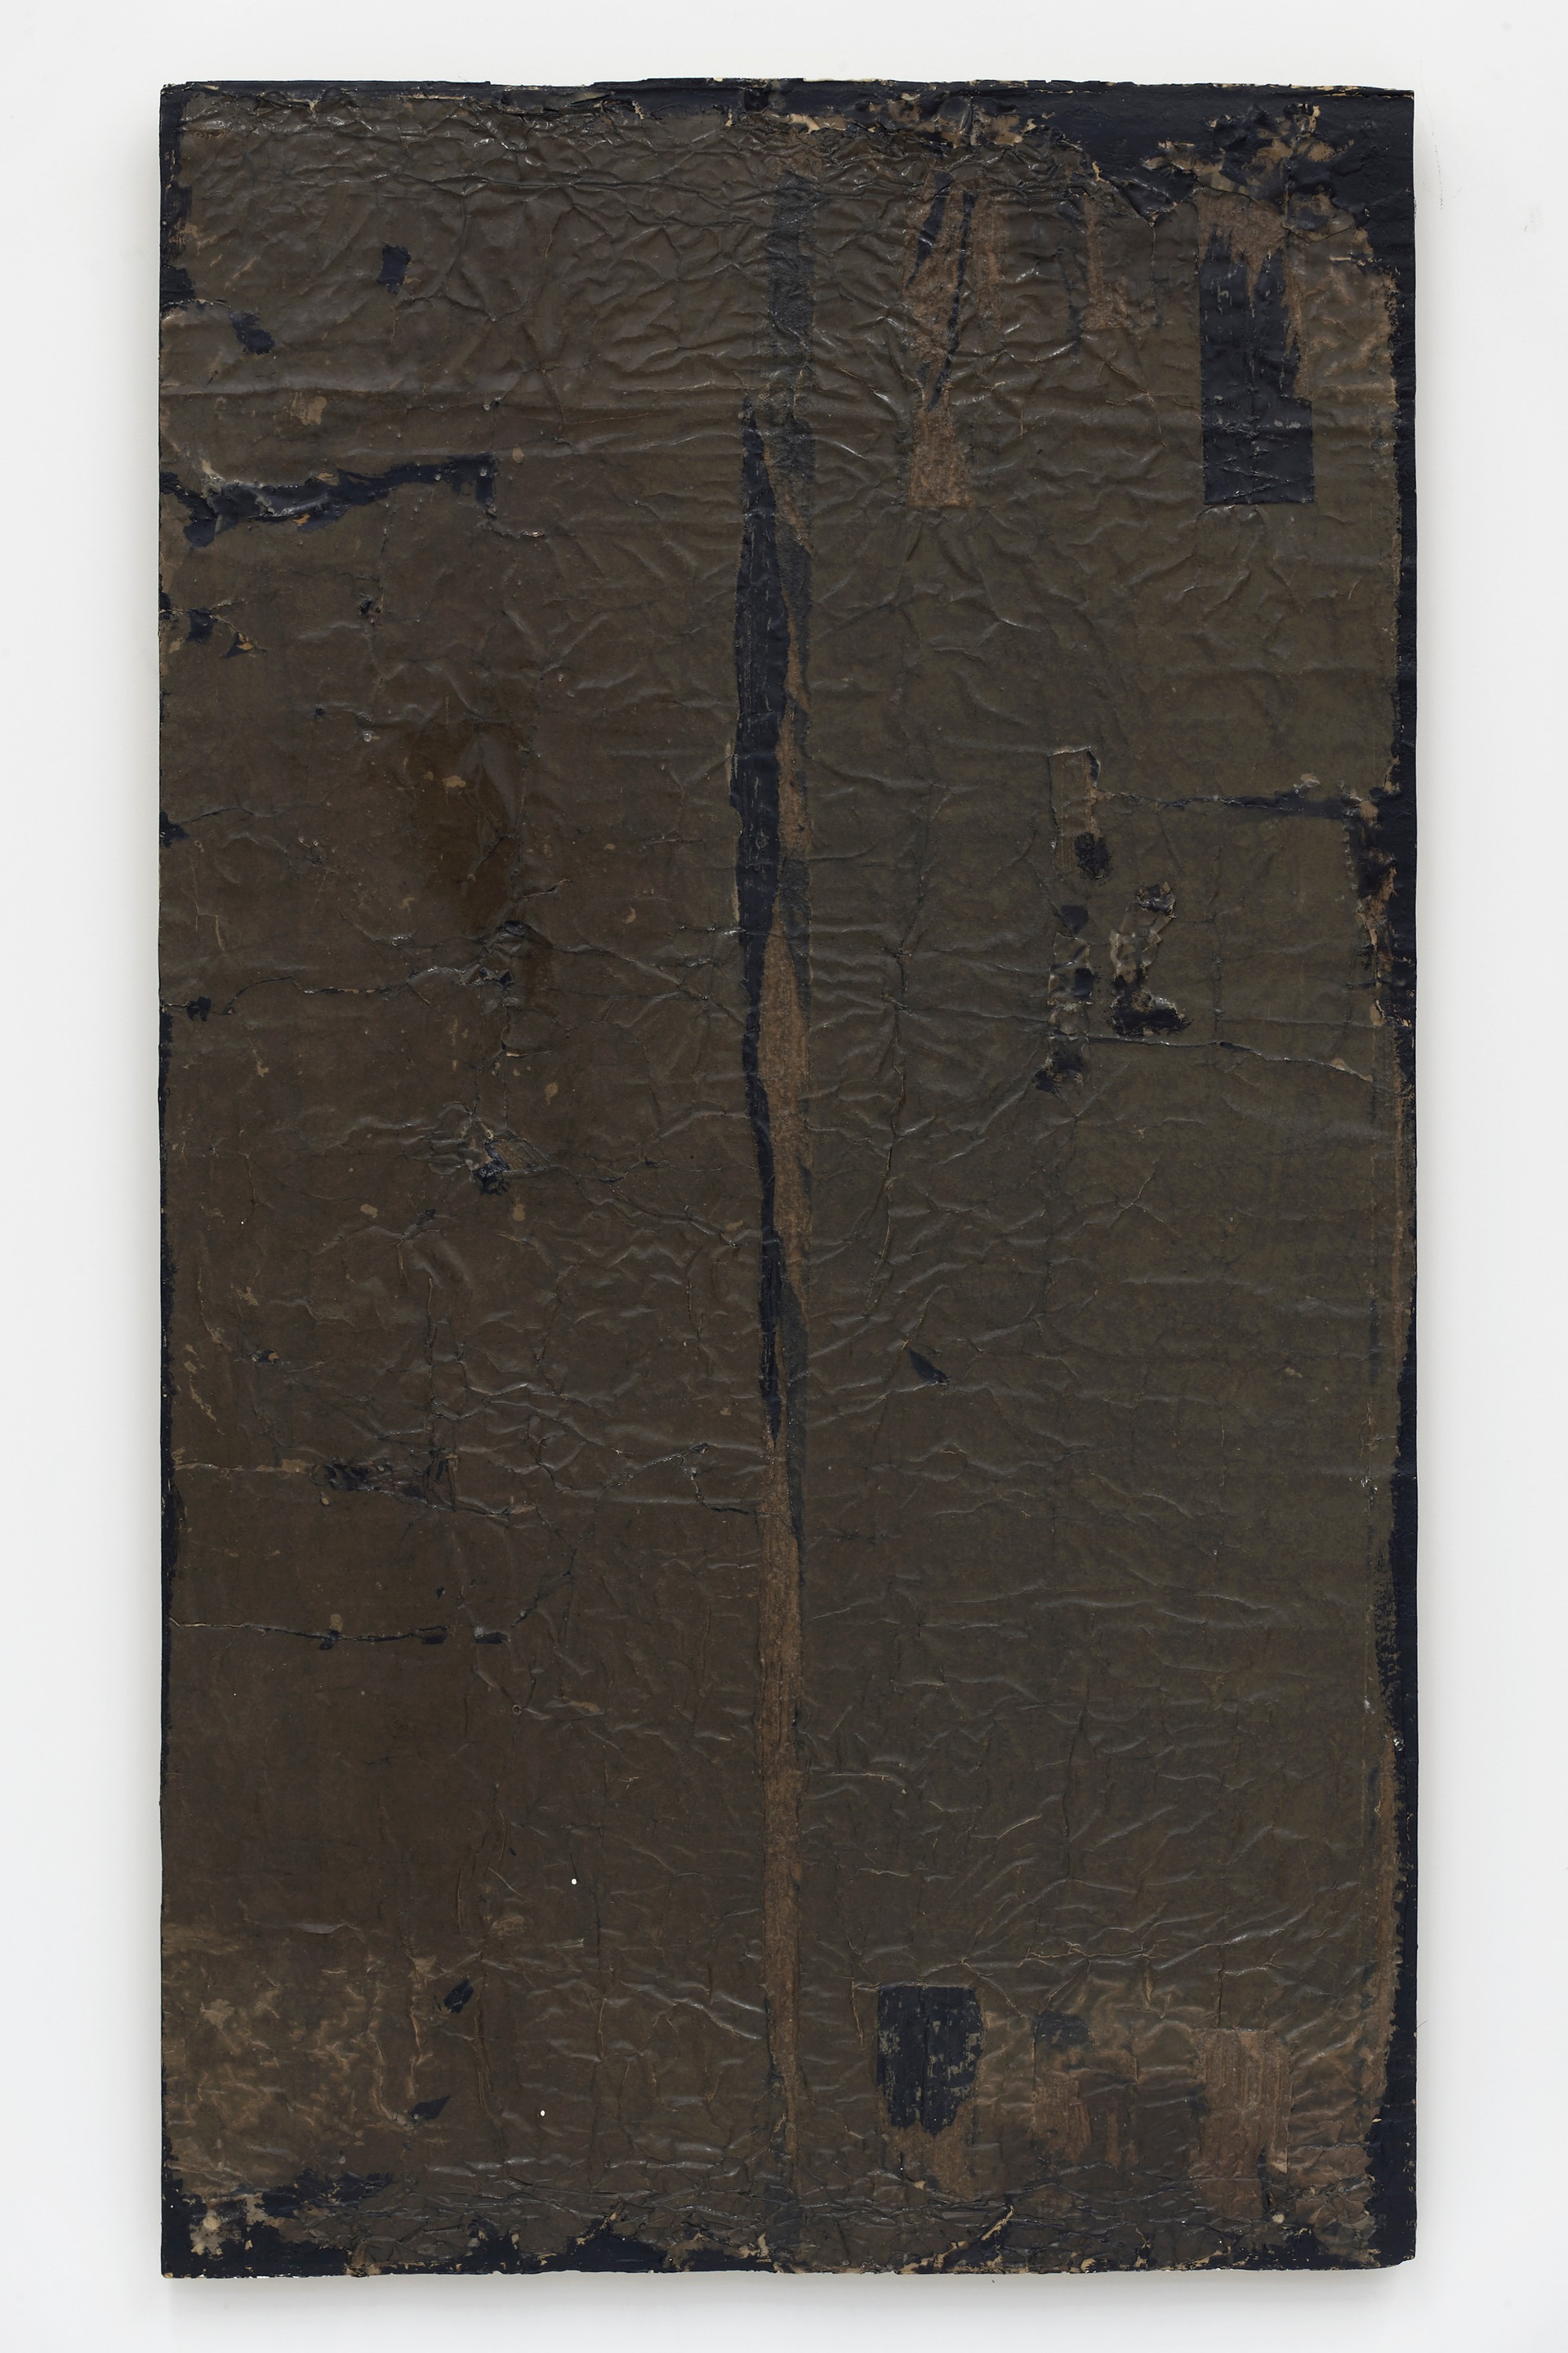 Helmut Lang  network #0, 2017 Paper, tar, and resin on canvas 58 1/2 x 33 1/4 x 1 1/4 inches